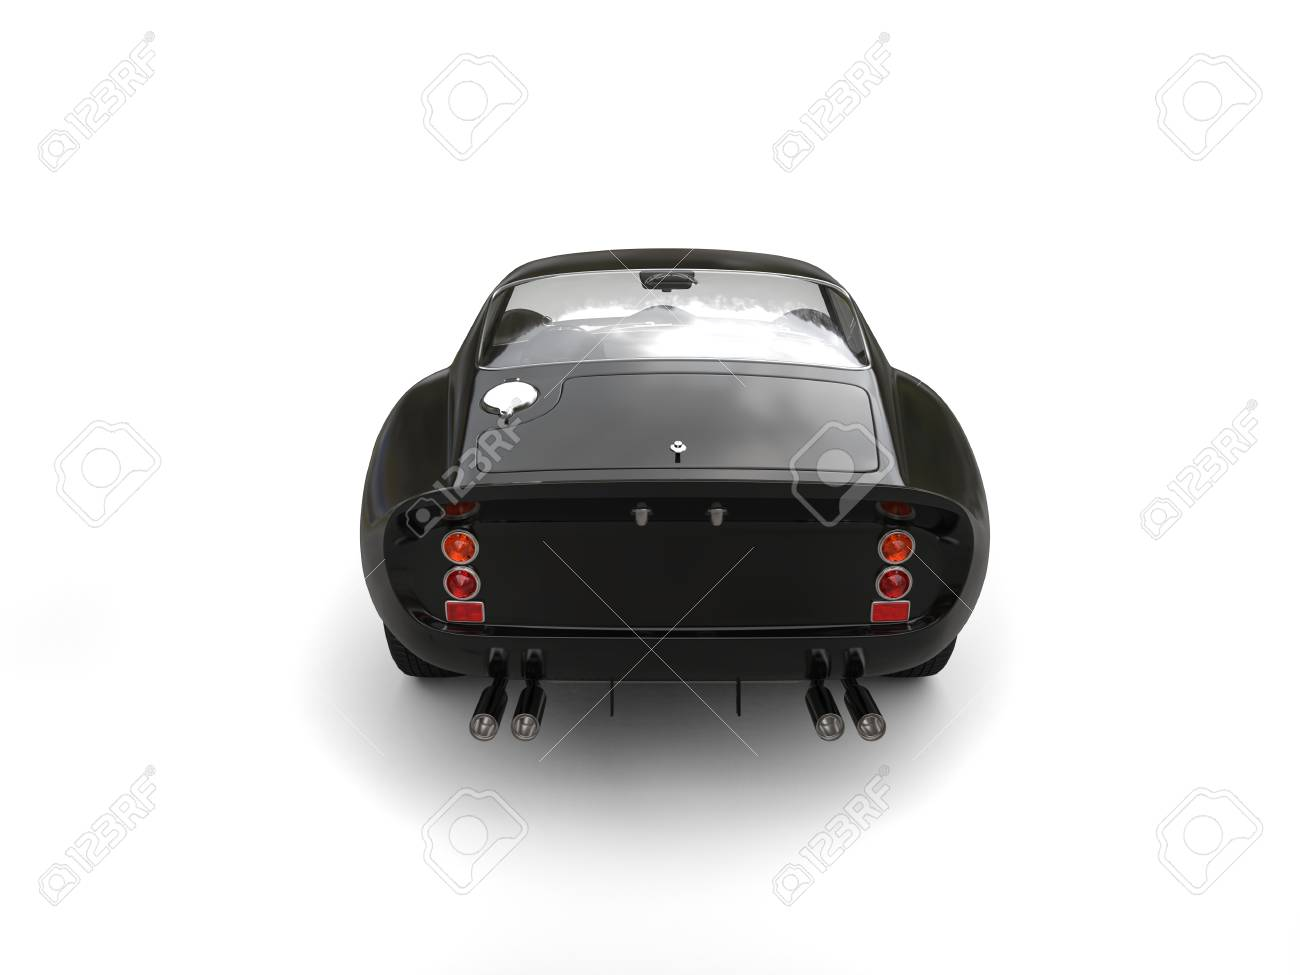 Car Back Top View >> Black Vintage Race Car Top Back View Stock Photo Picture And